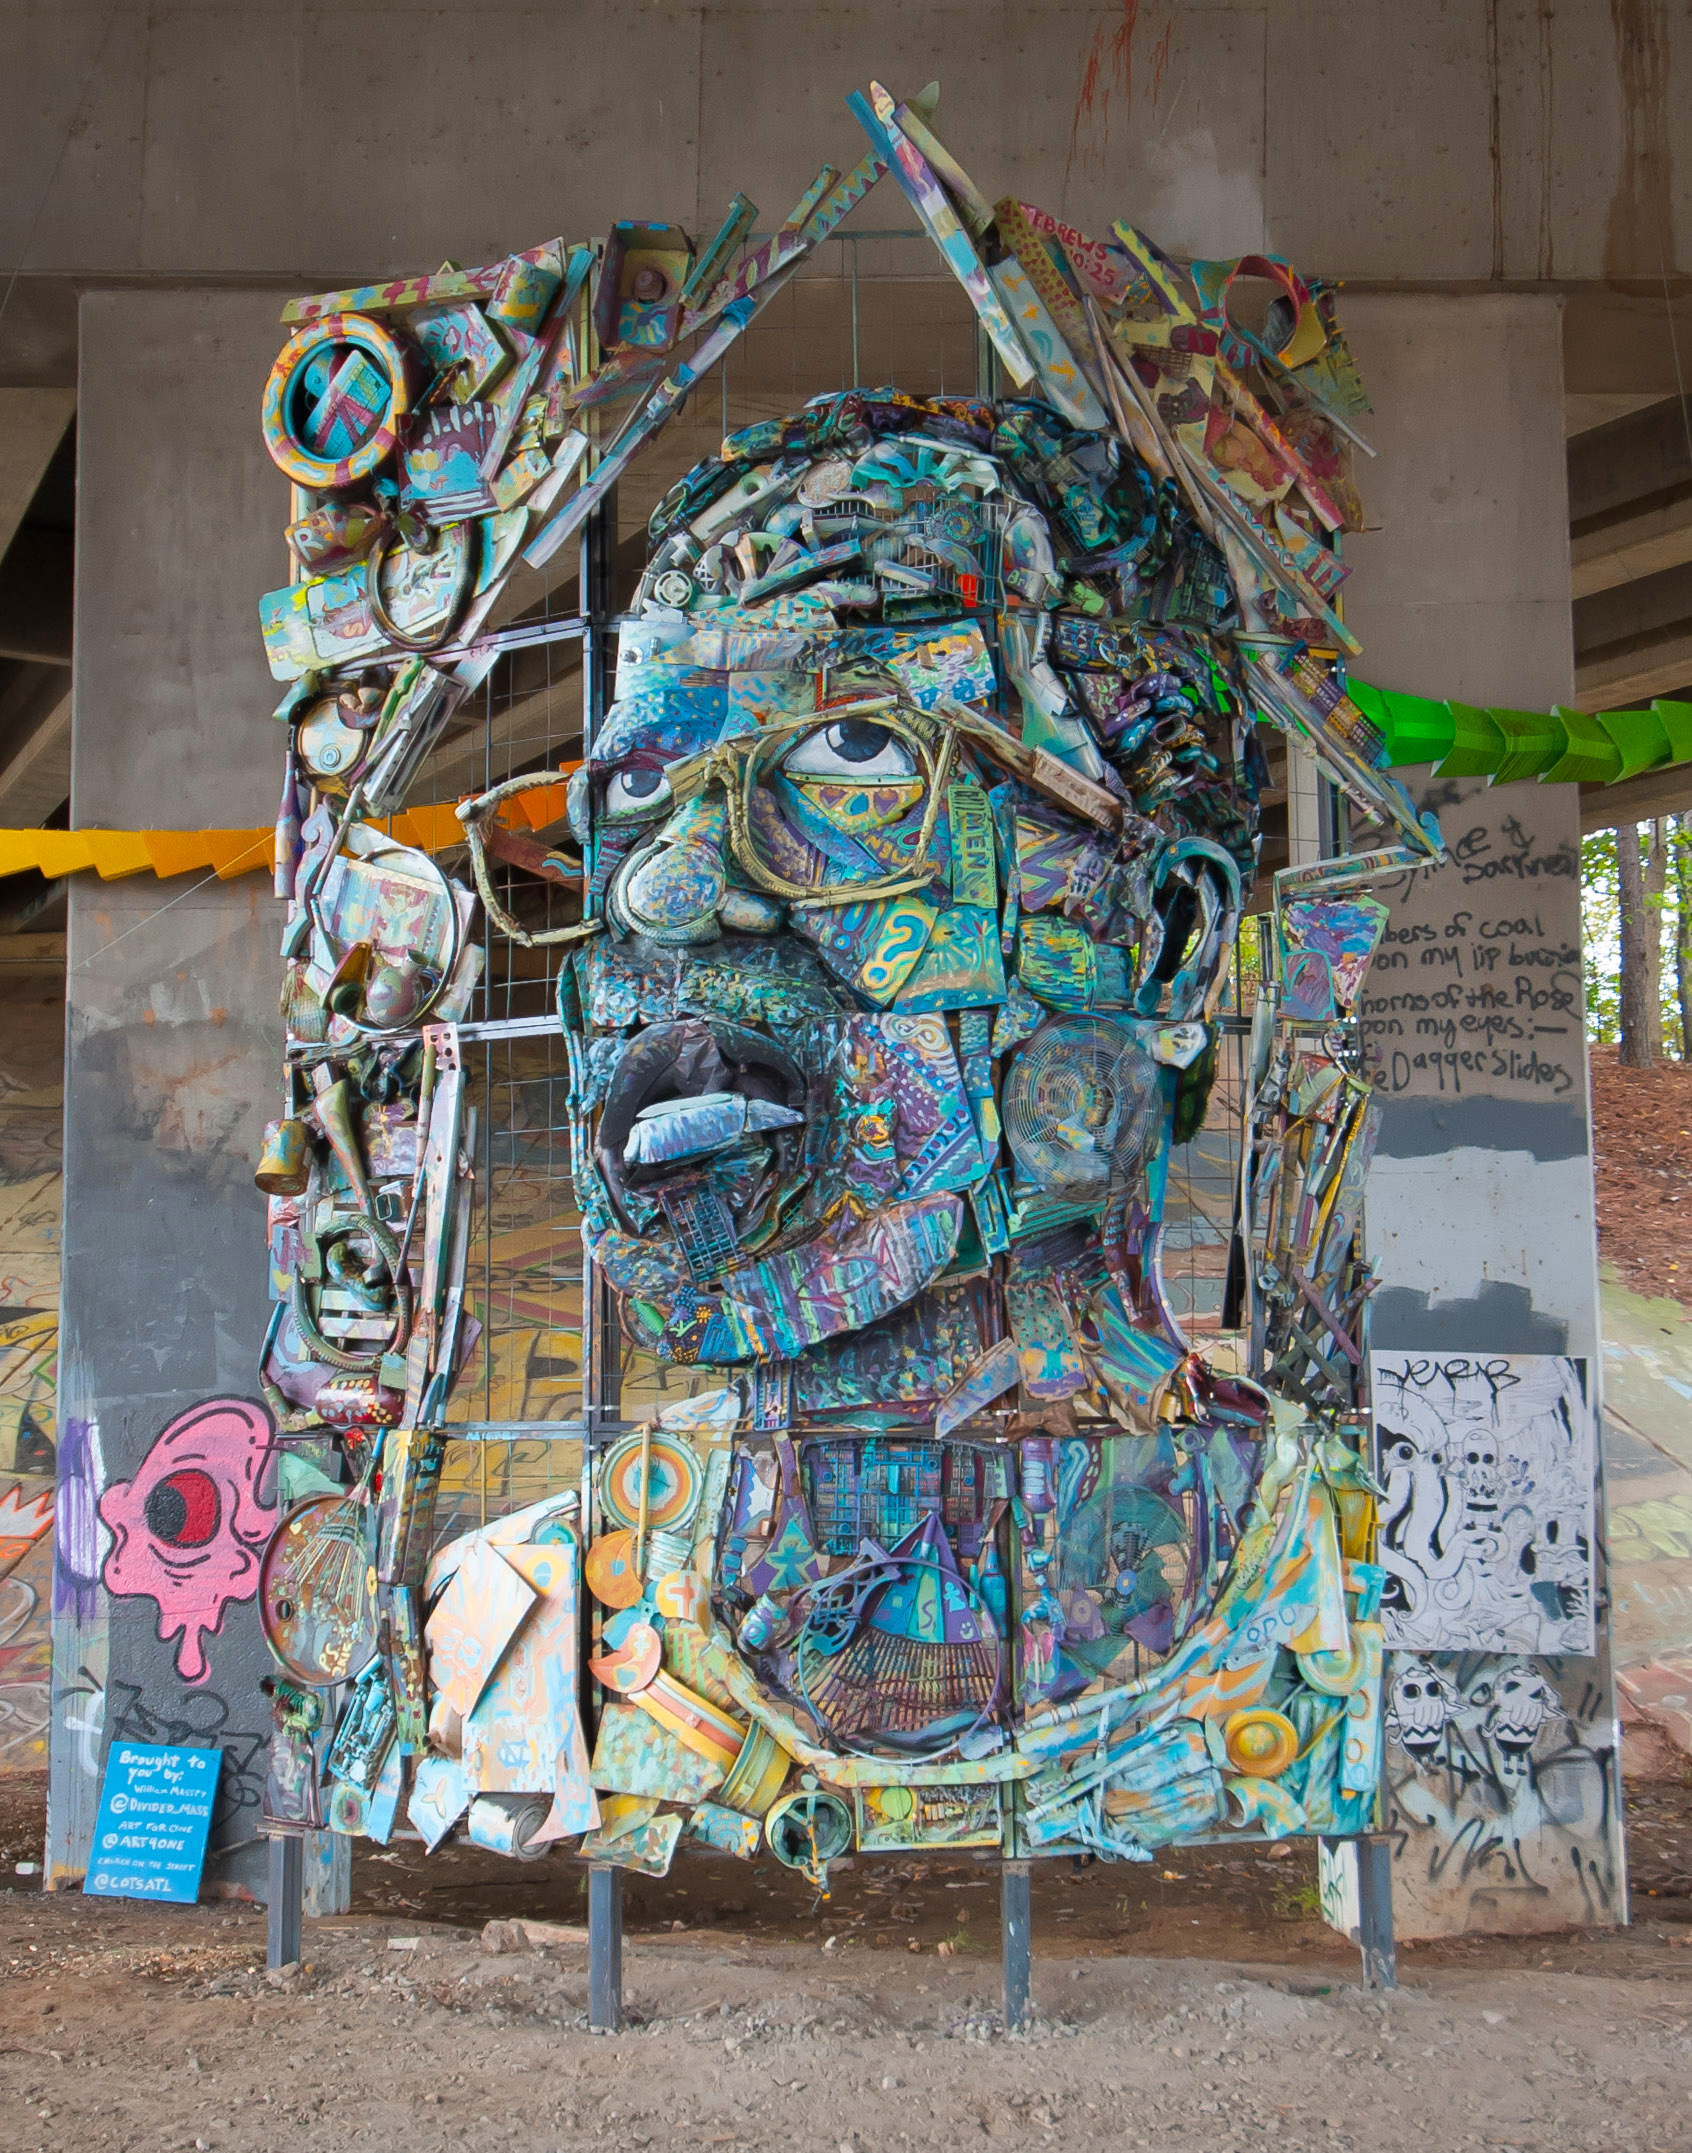 William Massey, The Art of Reconciliation, 22ft x 14ft x 3.5ft, Metal, found objects, paint. 2015.jpg